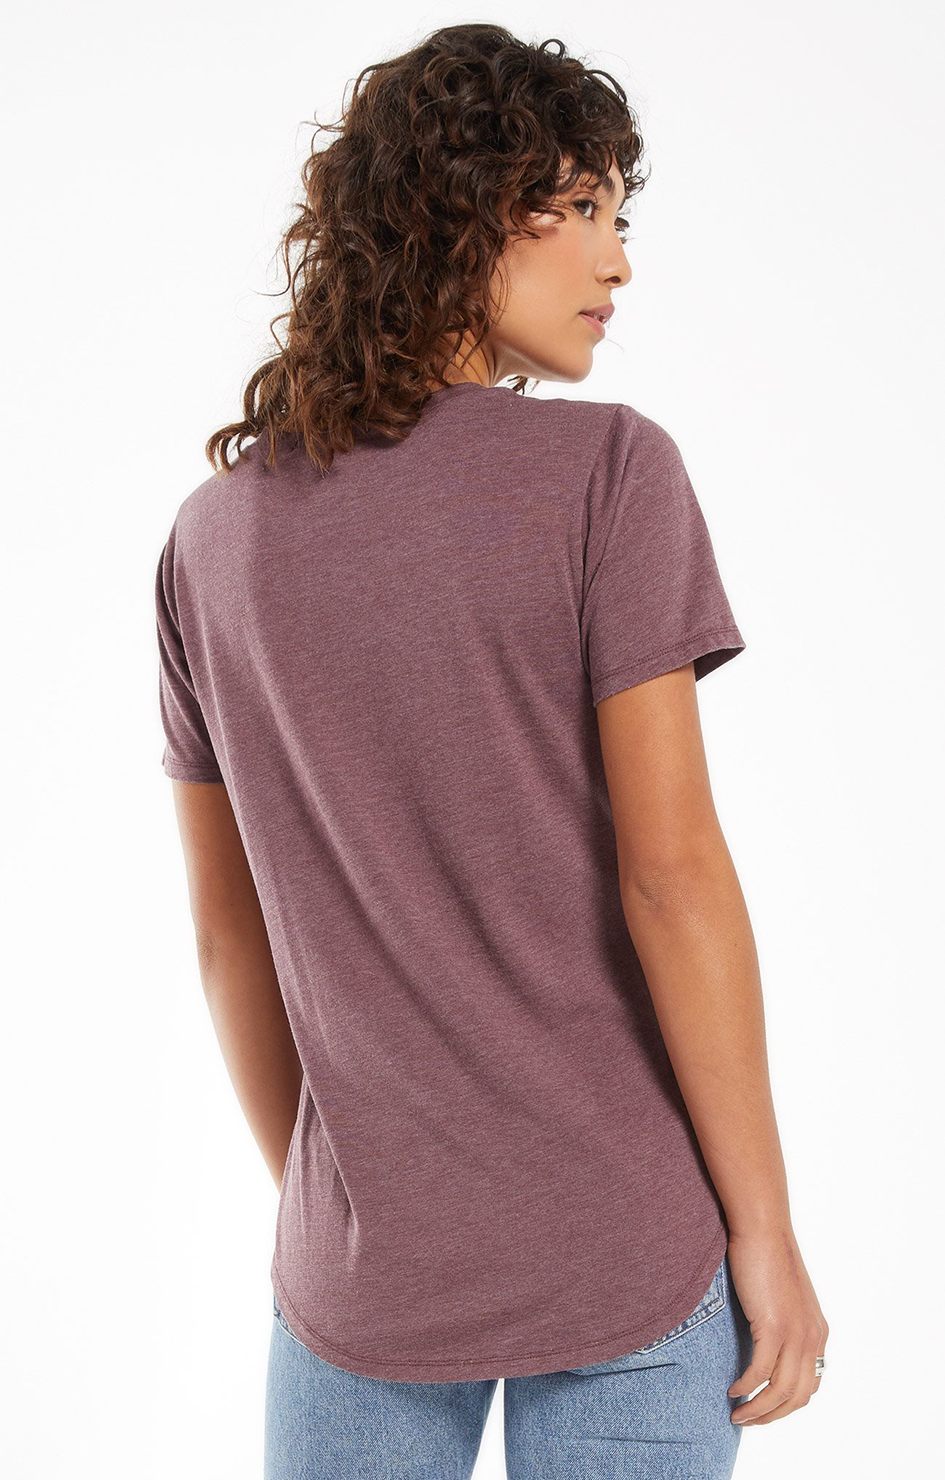 Z Supply - Pocket tee- Merlot